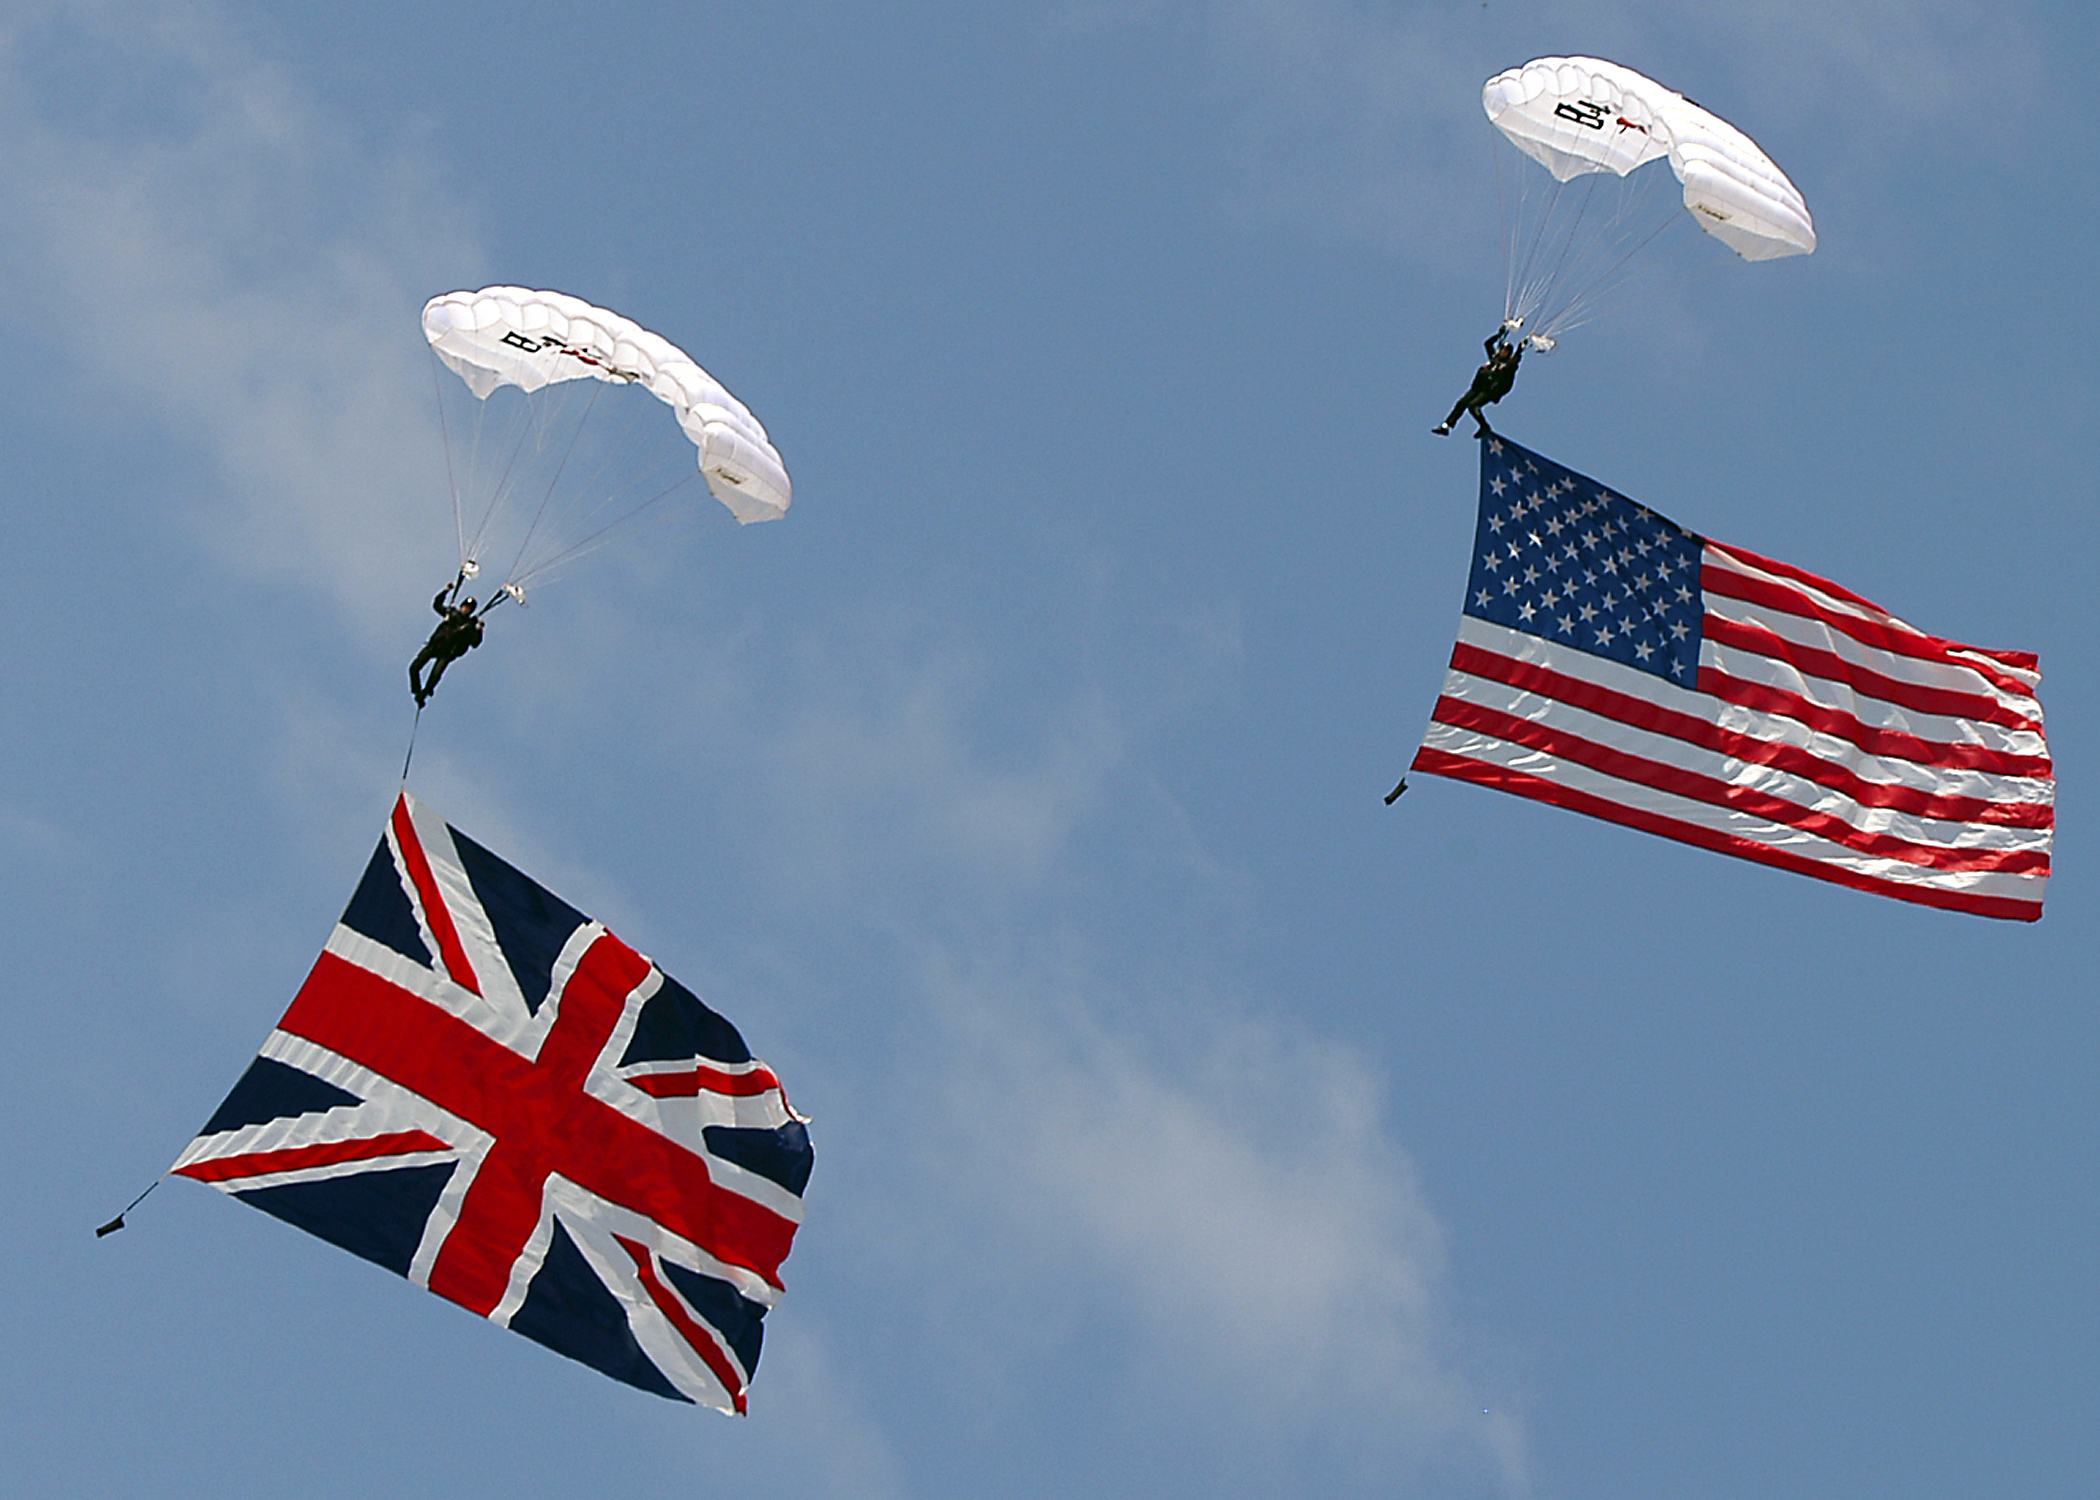 070908-N-1082Z-029 VIRGINIA BEACH, Va. (Sept. 8, 2007) - Members of the Blackwater USA parachute team wave Old Glory and the Union Jack during their demonstration at the 2007 Naval Air Station Oceana Air Show. The show featured a variety of civilian and military aircraft flight demonstrations and static displays. U.S. Navy photo by Mass Communication Specialist 2nd Class Jason R. Zalasky (RELEASED)